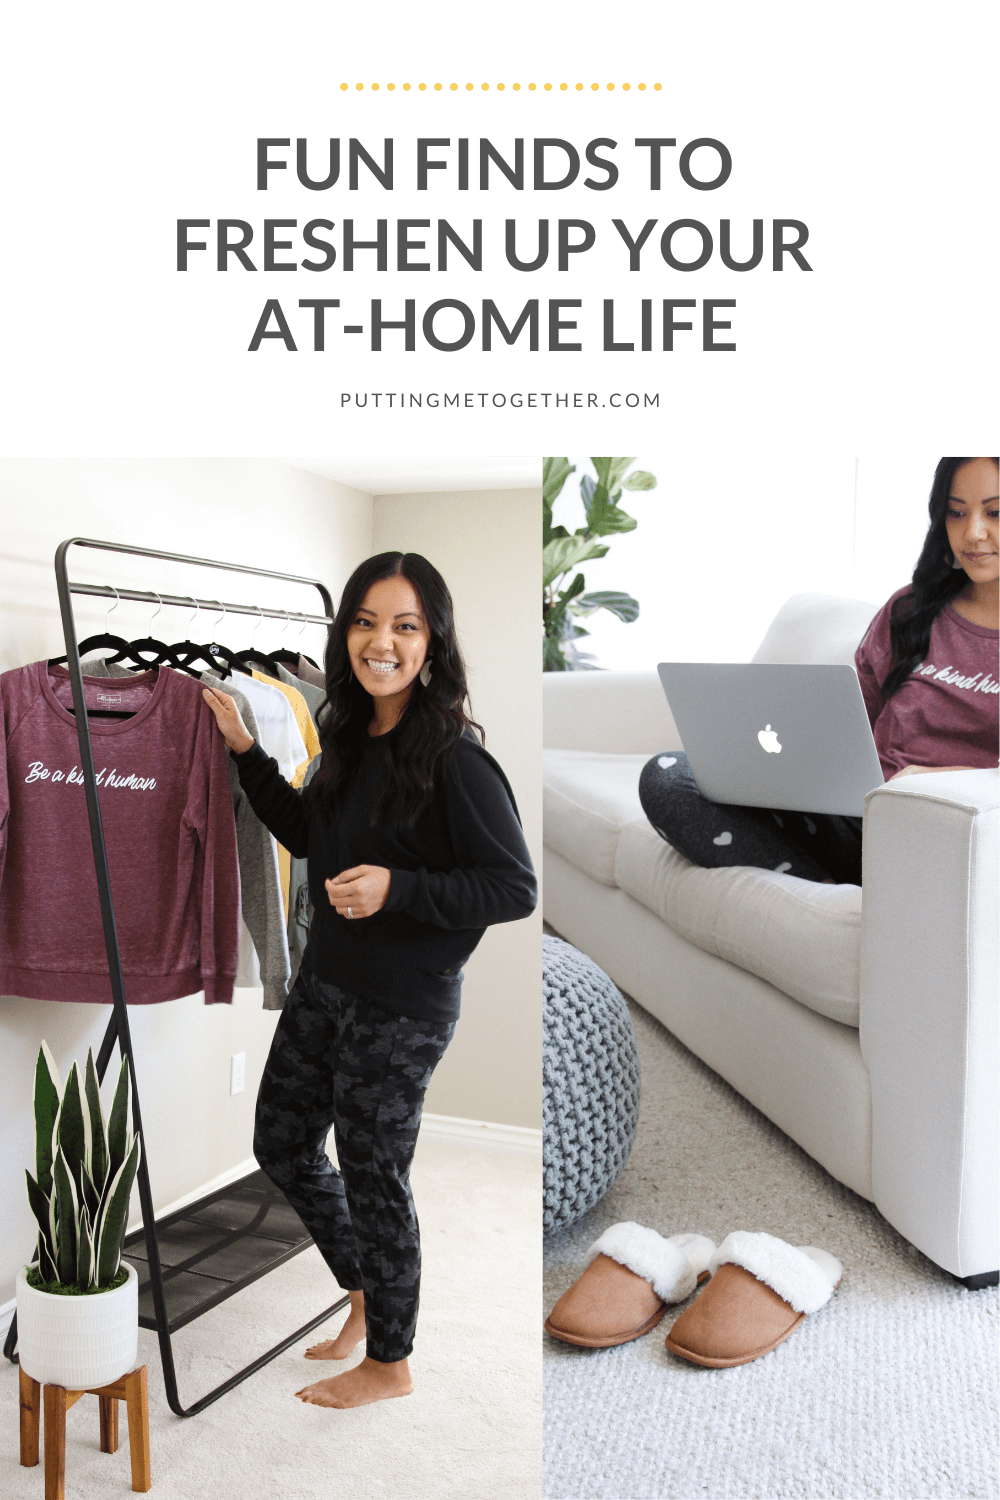 Mix It Up at Home with Affordable Loungewear and Home Decor